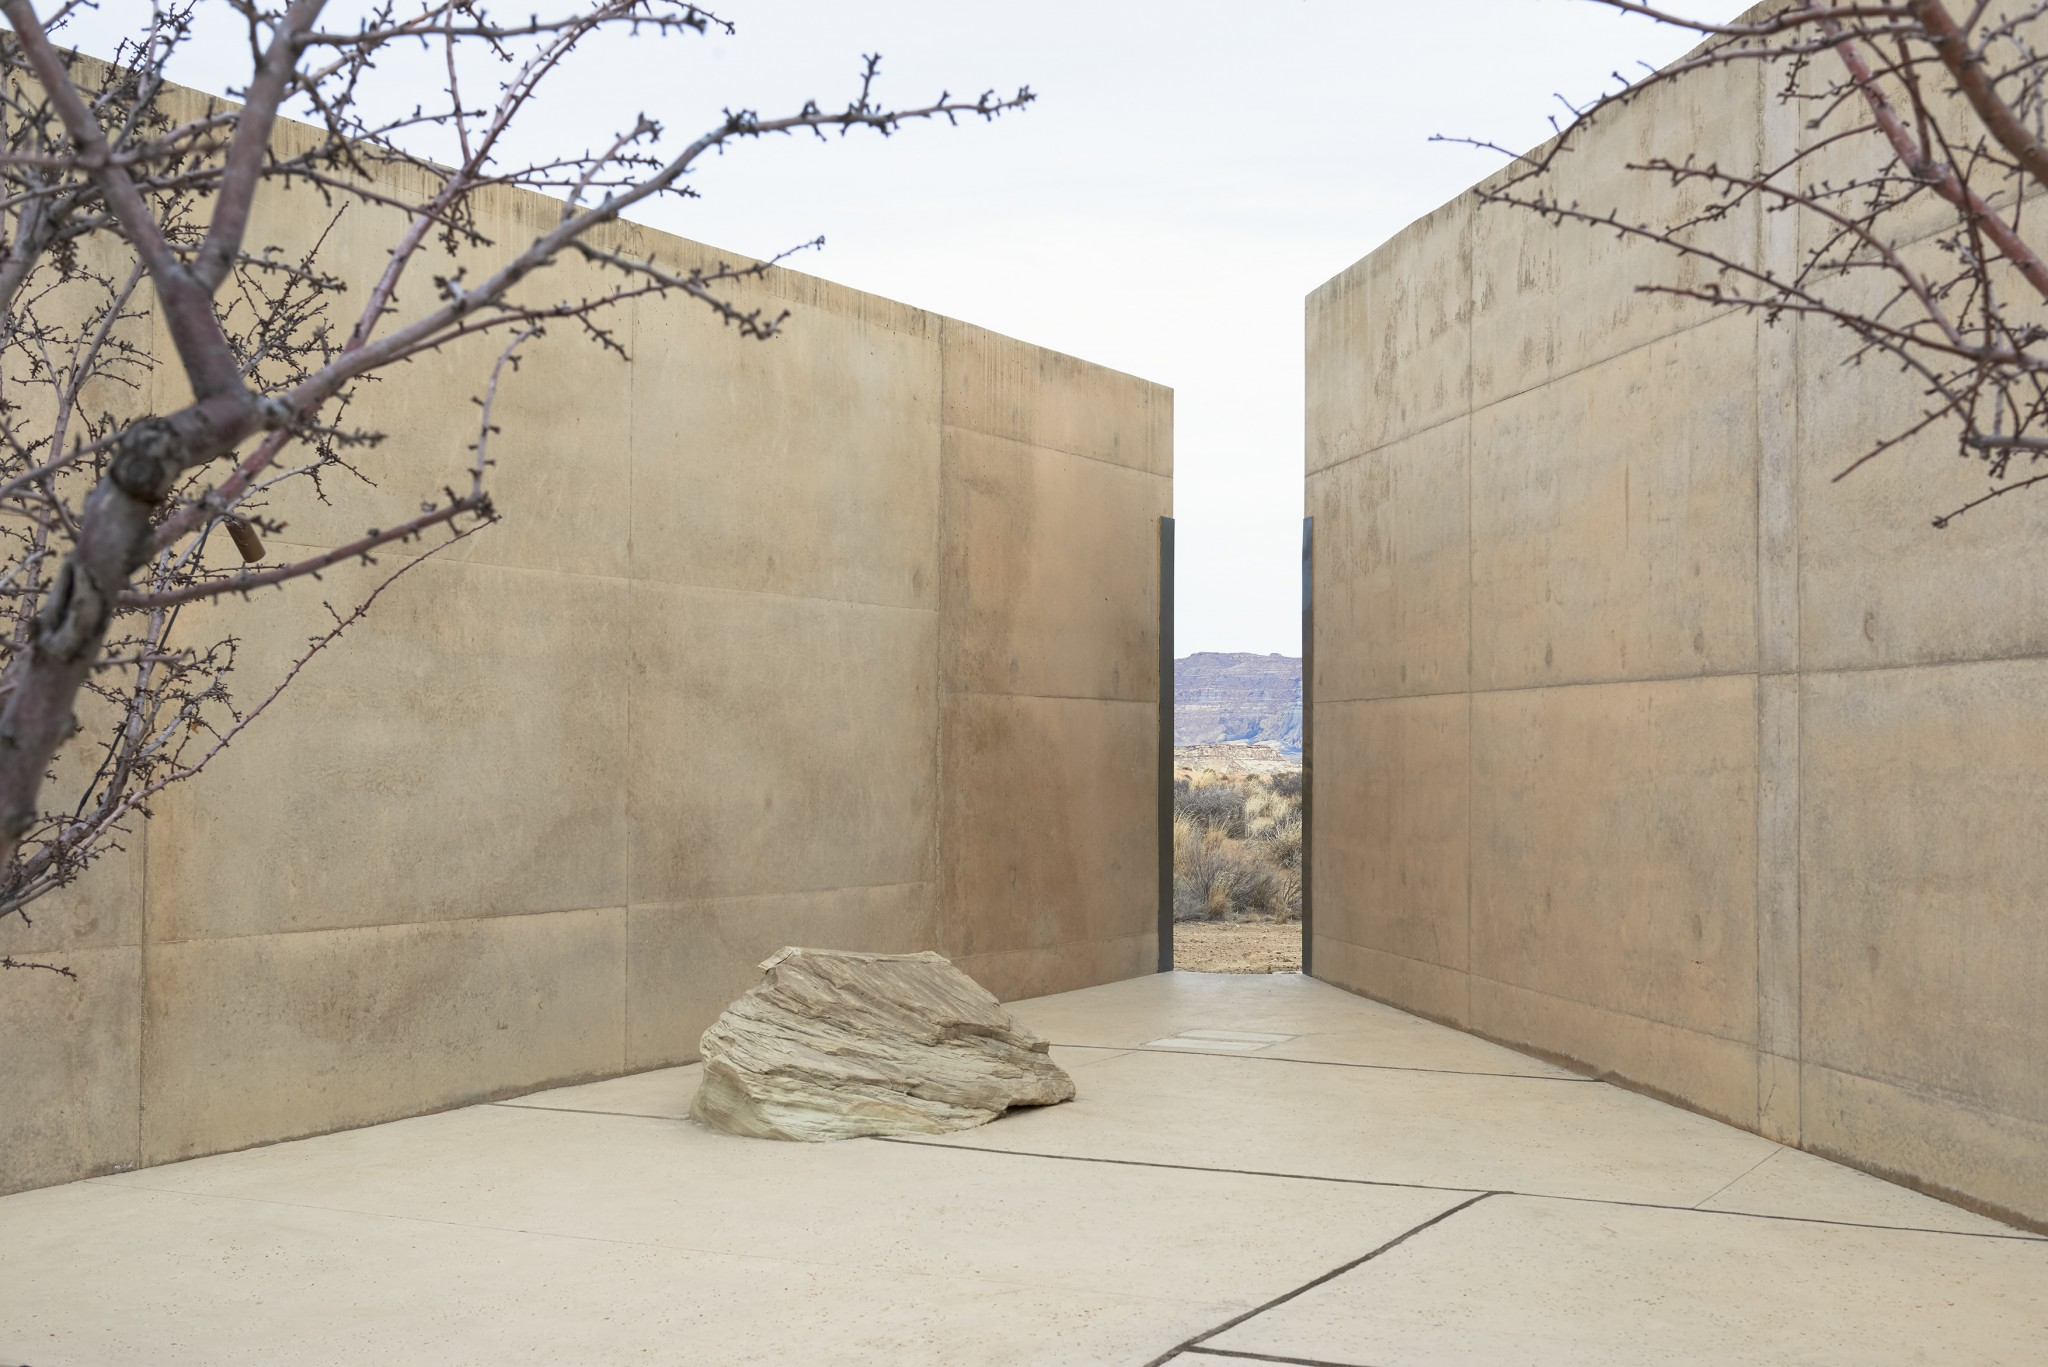 aman resorts utah 2. Elegant Architectural Details Abound At The Amangiri Hotel. Photograph: William Green Aman Resorts Utah 2